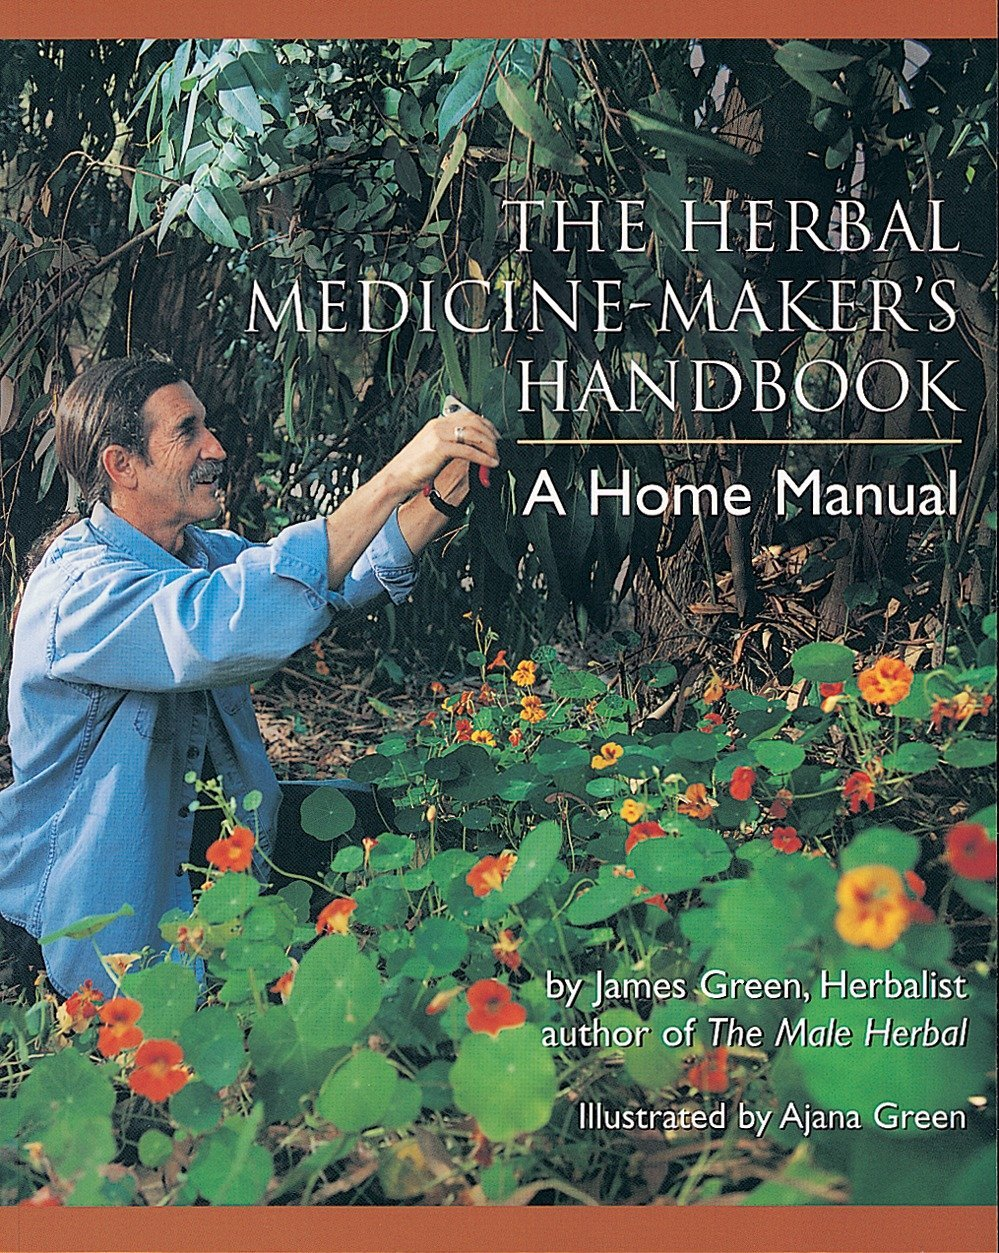 Herbal Medicine Maker's Handbook by James Green